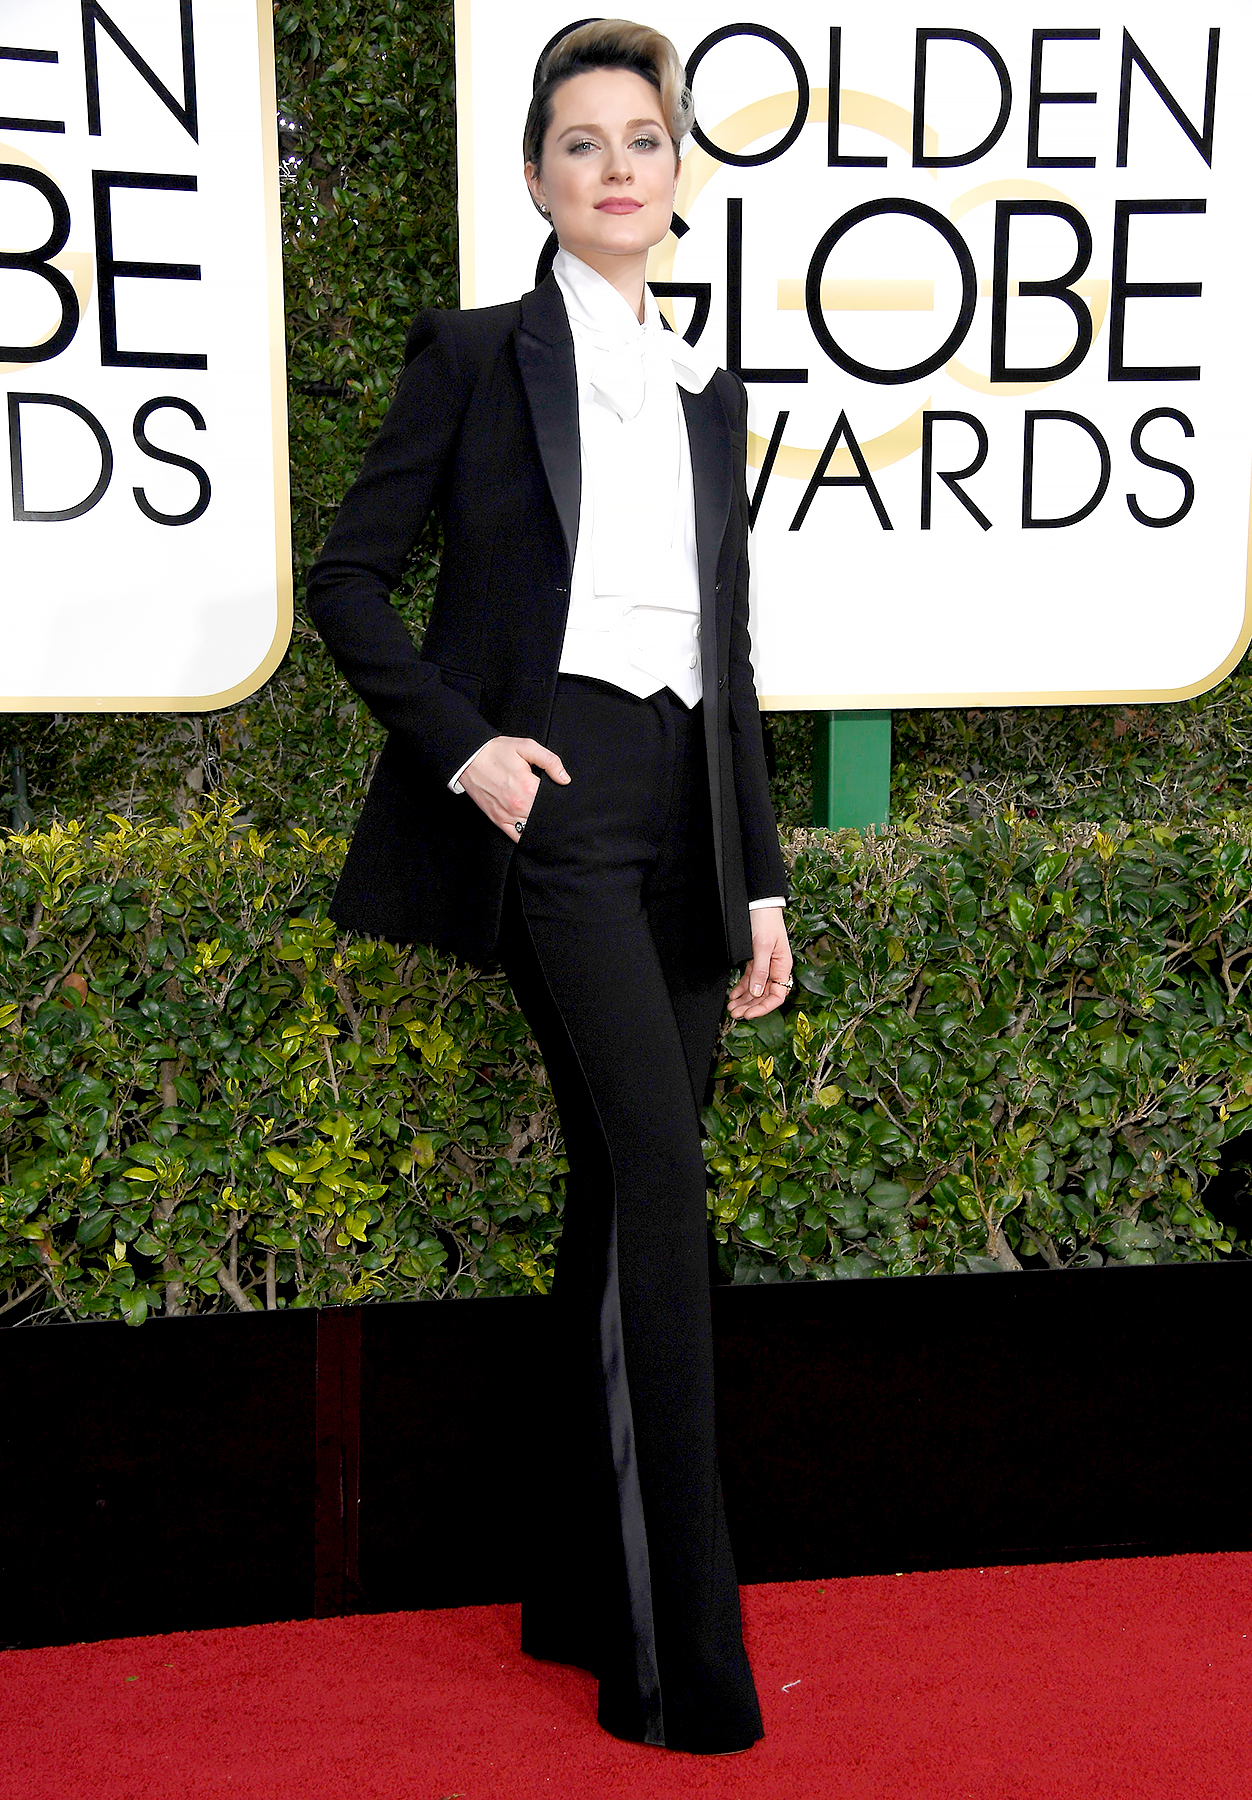 Evan Rachel Wood arrives to the 74th Annual Golden Globe Awards held at the Beverly Hilton Hotel on January 8, 2017.